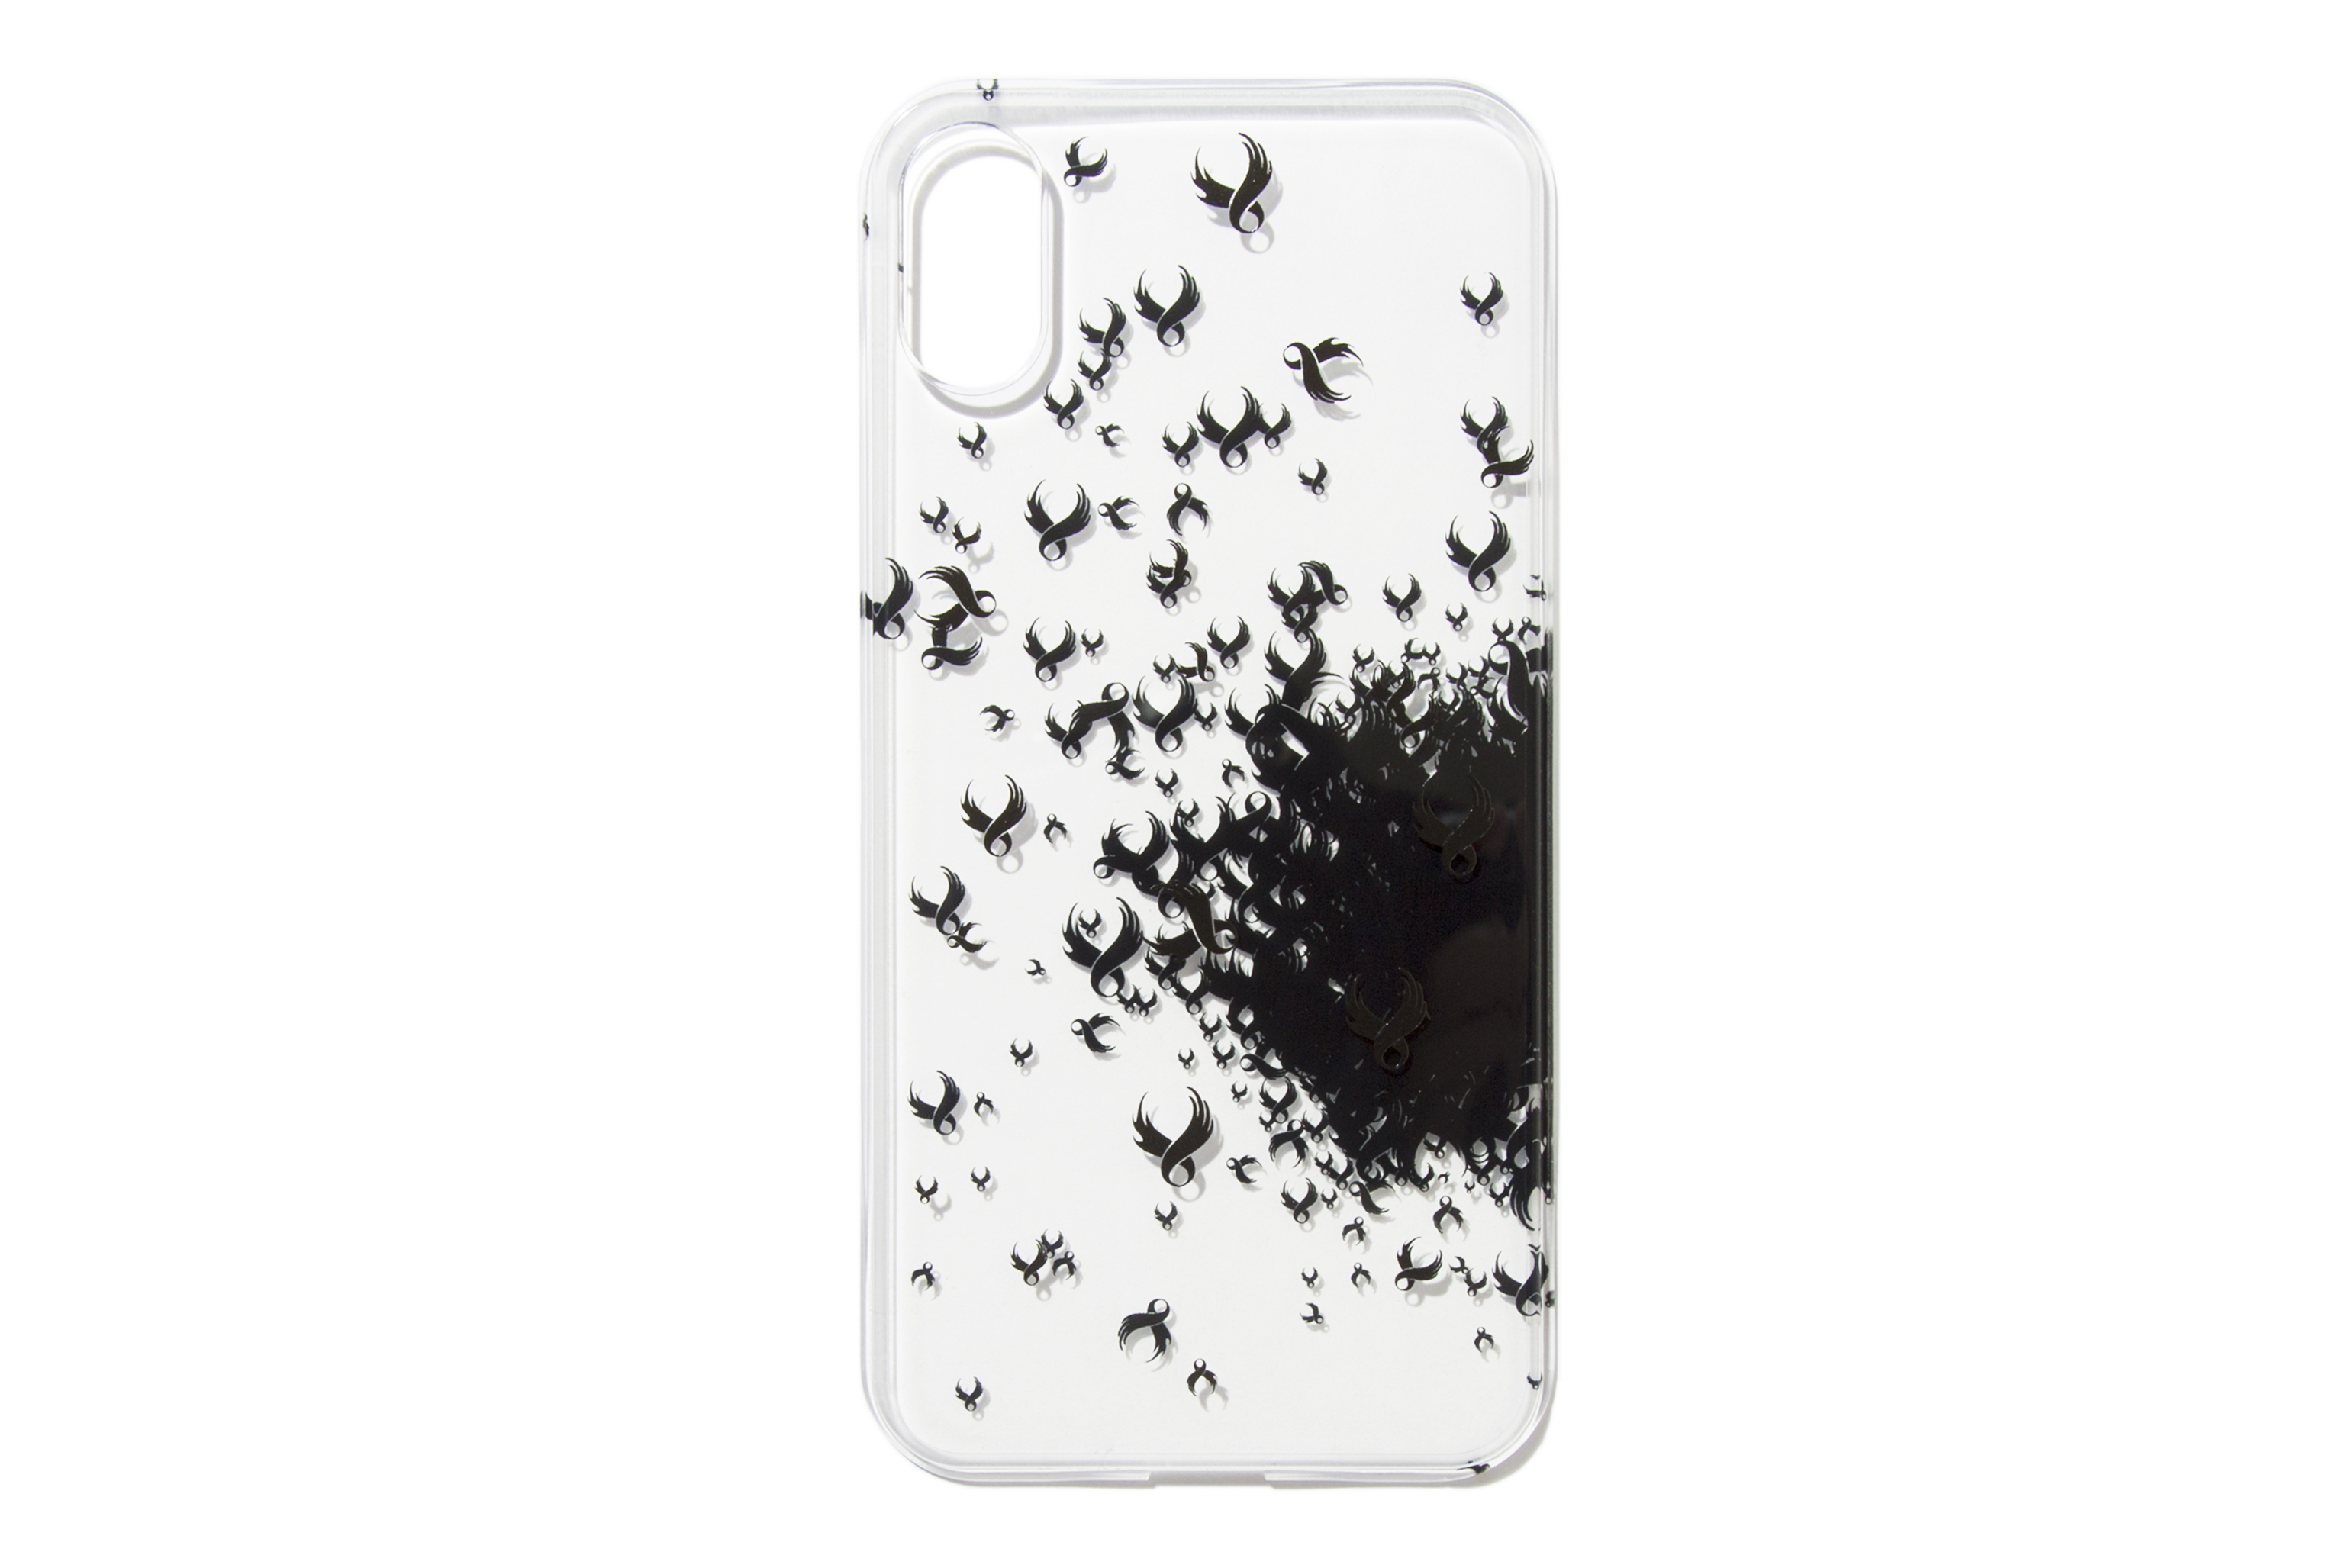 remix-remix-x-rhinoshield-mod-nx-iphone-case-3-back-cove_p2